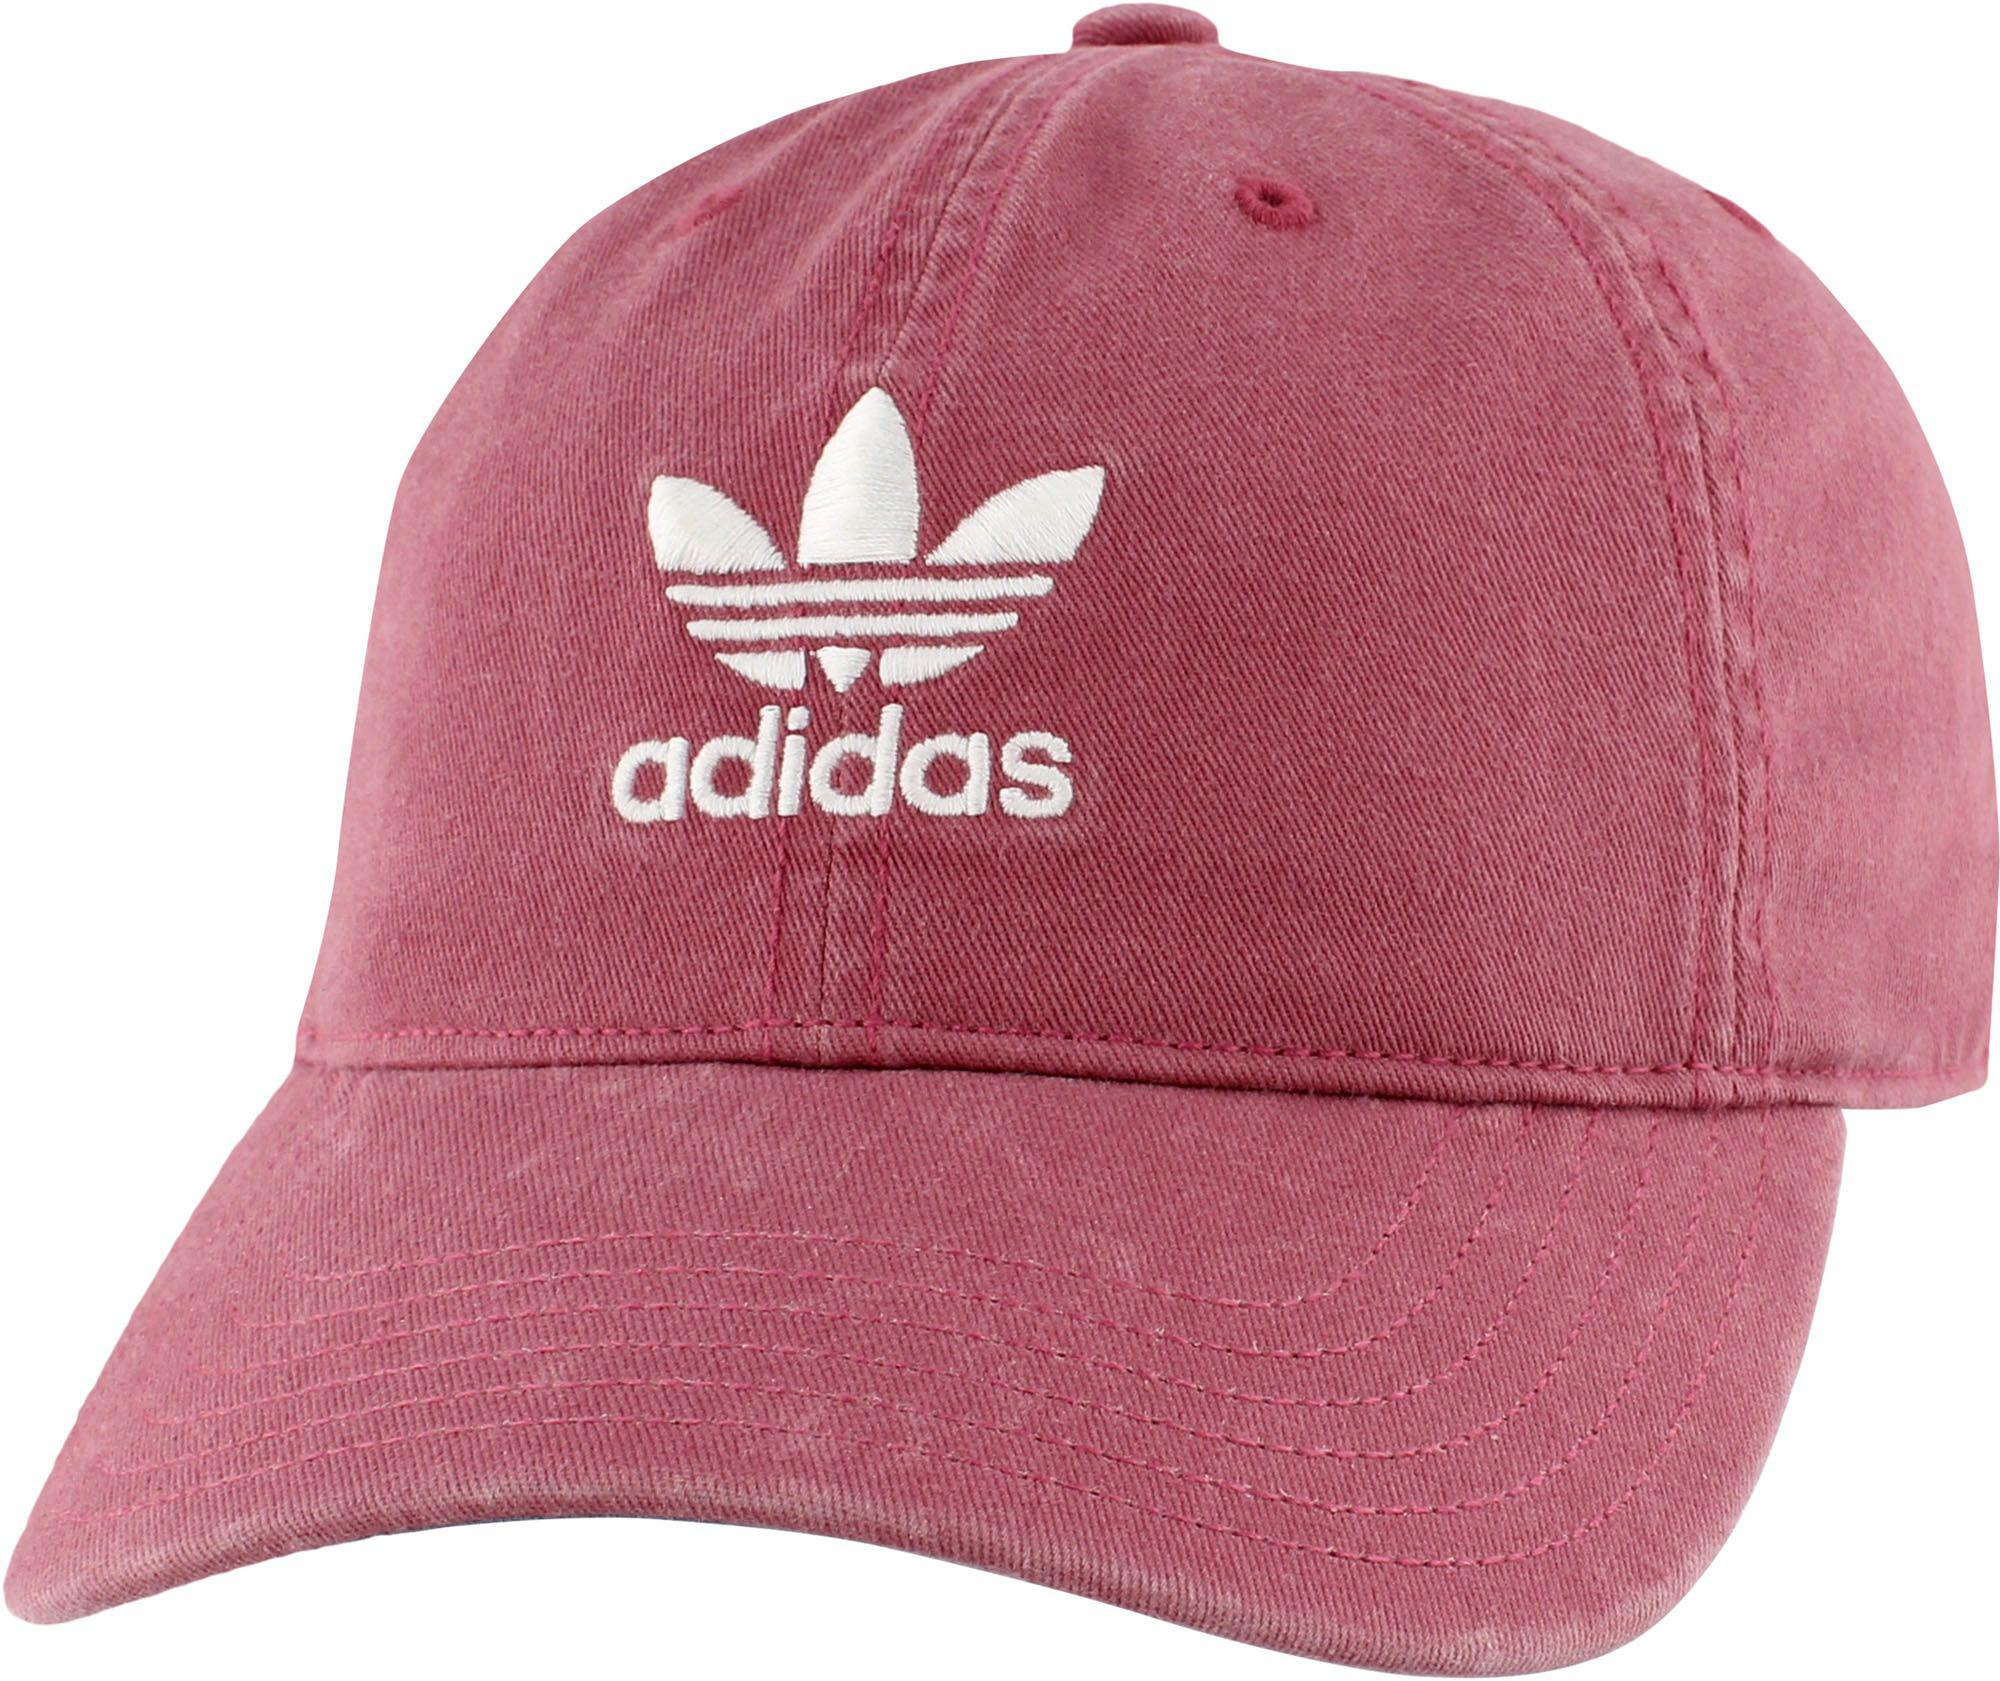 Adidas - Multicolor Originals Relaxed Strapback Hat - Lyst. View fullscreen e54698683992